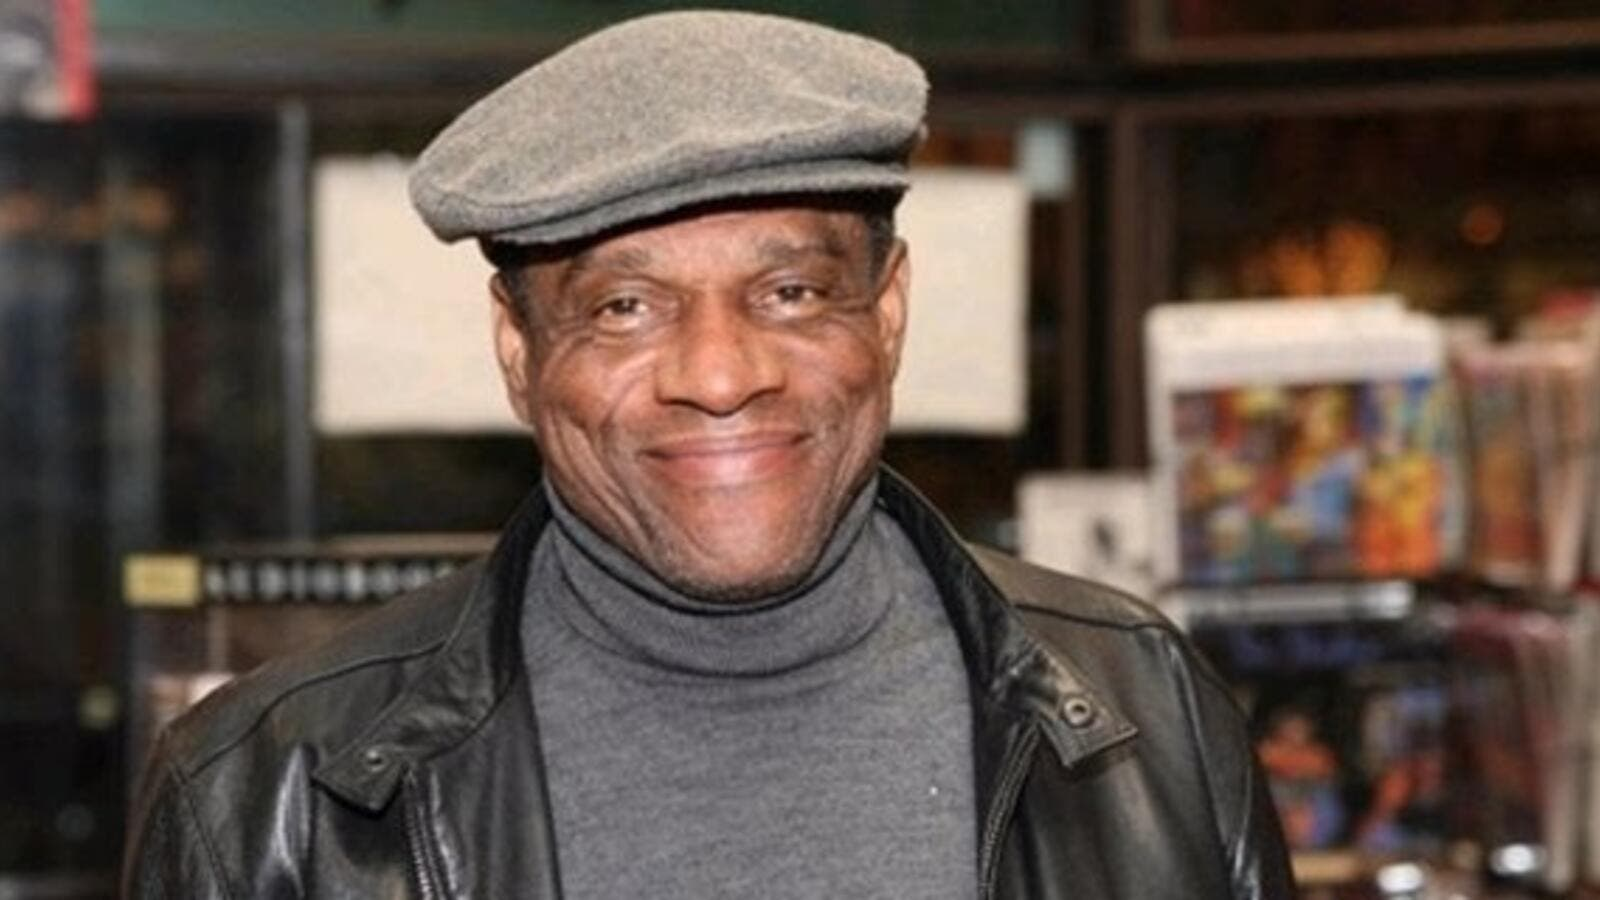 An actor best known for playing Dr. Hoover in the Fresh Prince of Bel Air has died after complications from blood cancer